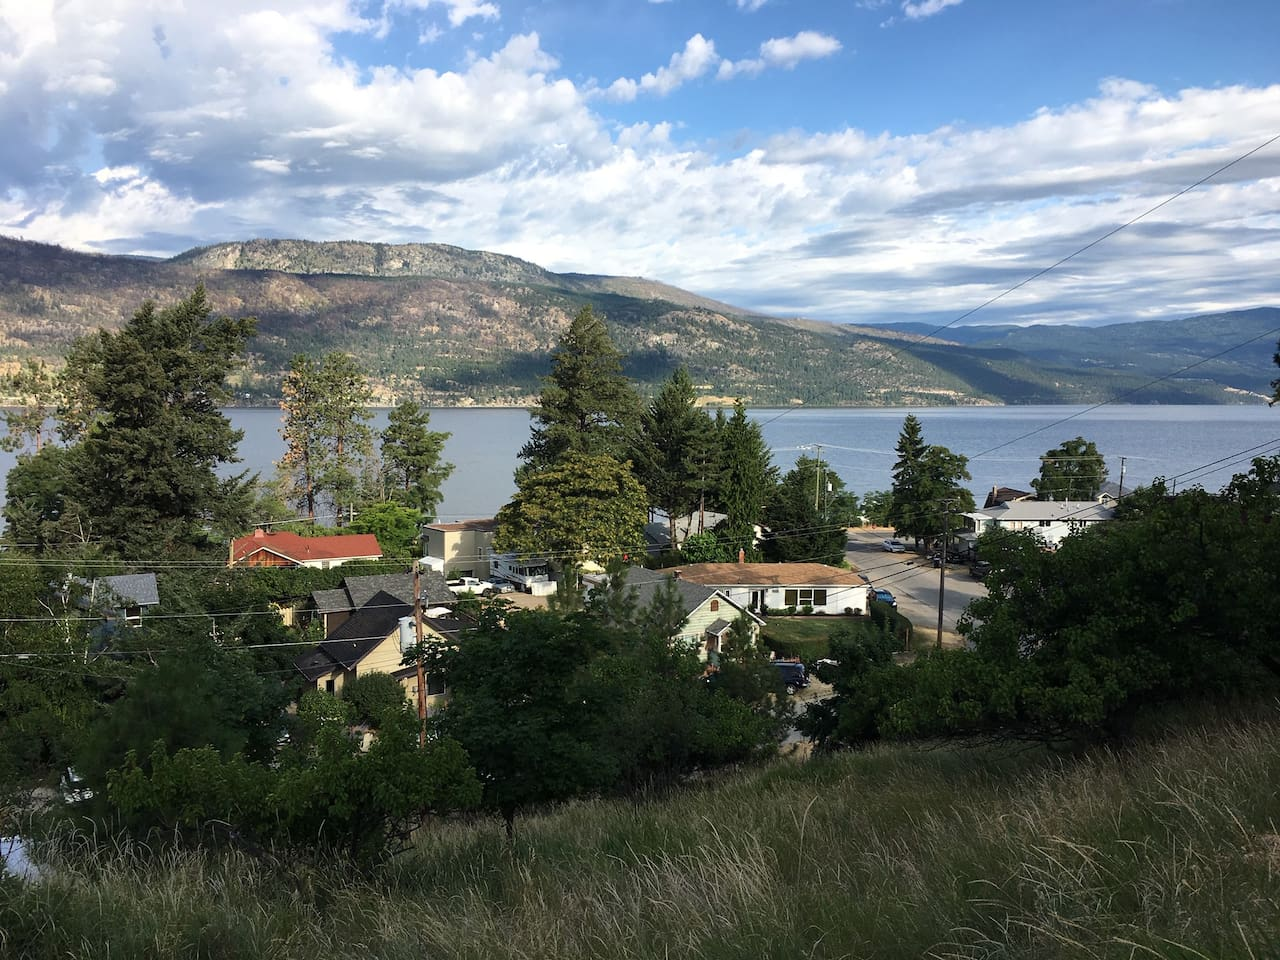 Privacy And open spaces. Great location overlooking Okanagan Lake and the village of Okanagan Centre. 5 minute walk to beach, restaurant, lake trail. 5 minute drive to Winfield's grocery stores, banks, restaurants, fast food outlets and  more...